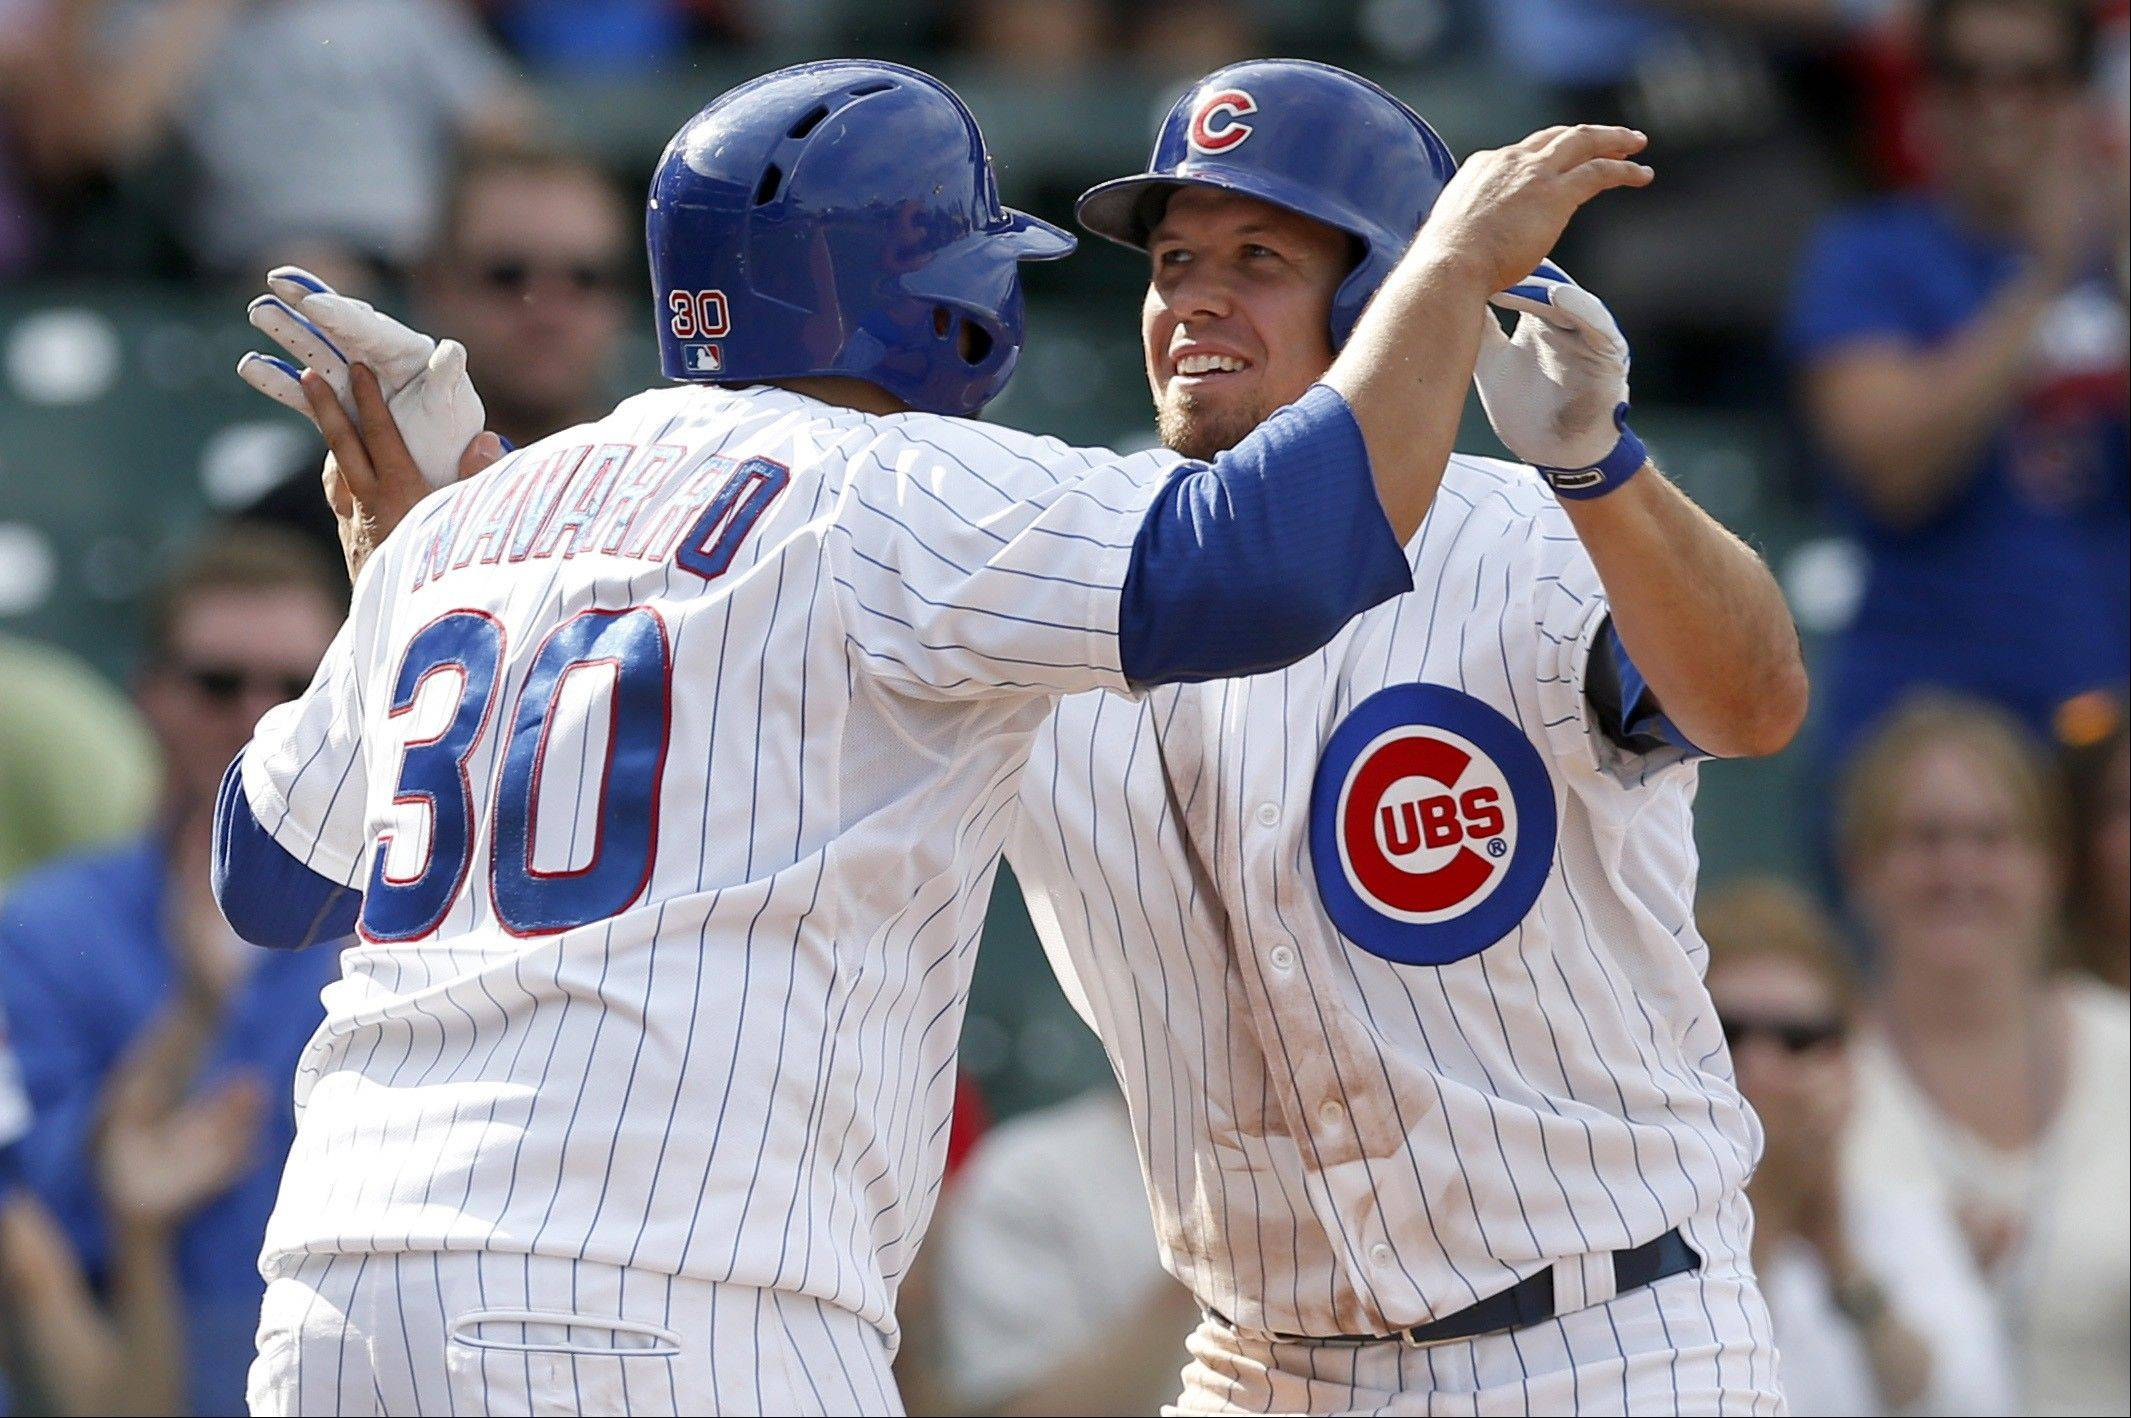 The Cubs' Dioner Navarro (30) and Donnie Murphy celebrate after the pair scored on Murphy's home run hit off Miami Marlins relief pitcher Ryan Webb during Wednesday's game at Wrigley Field.